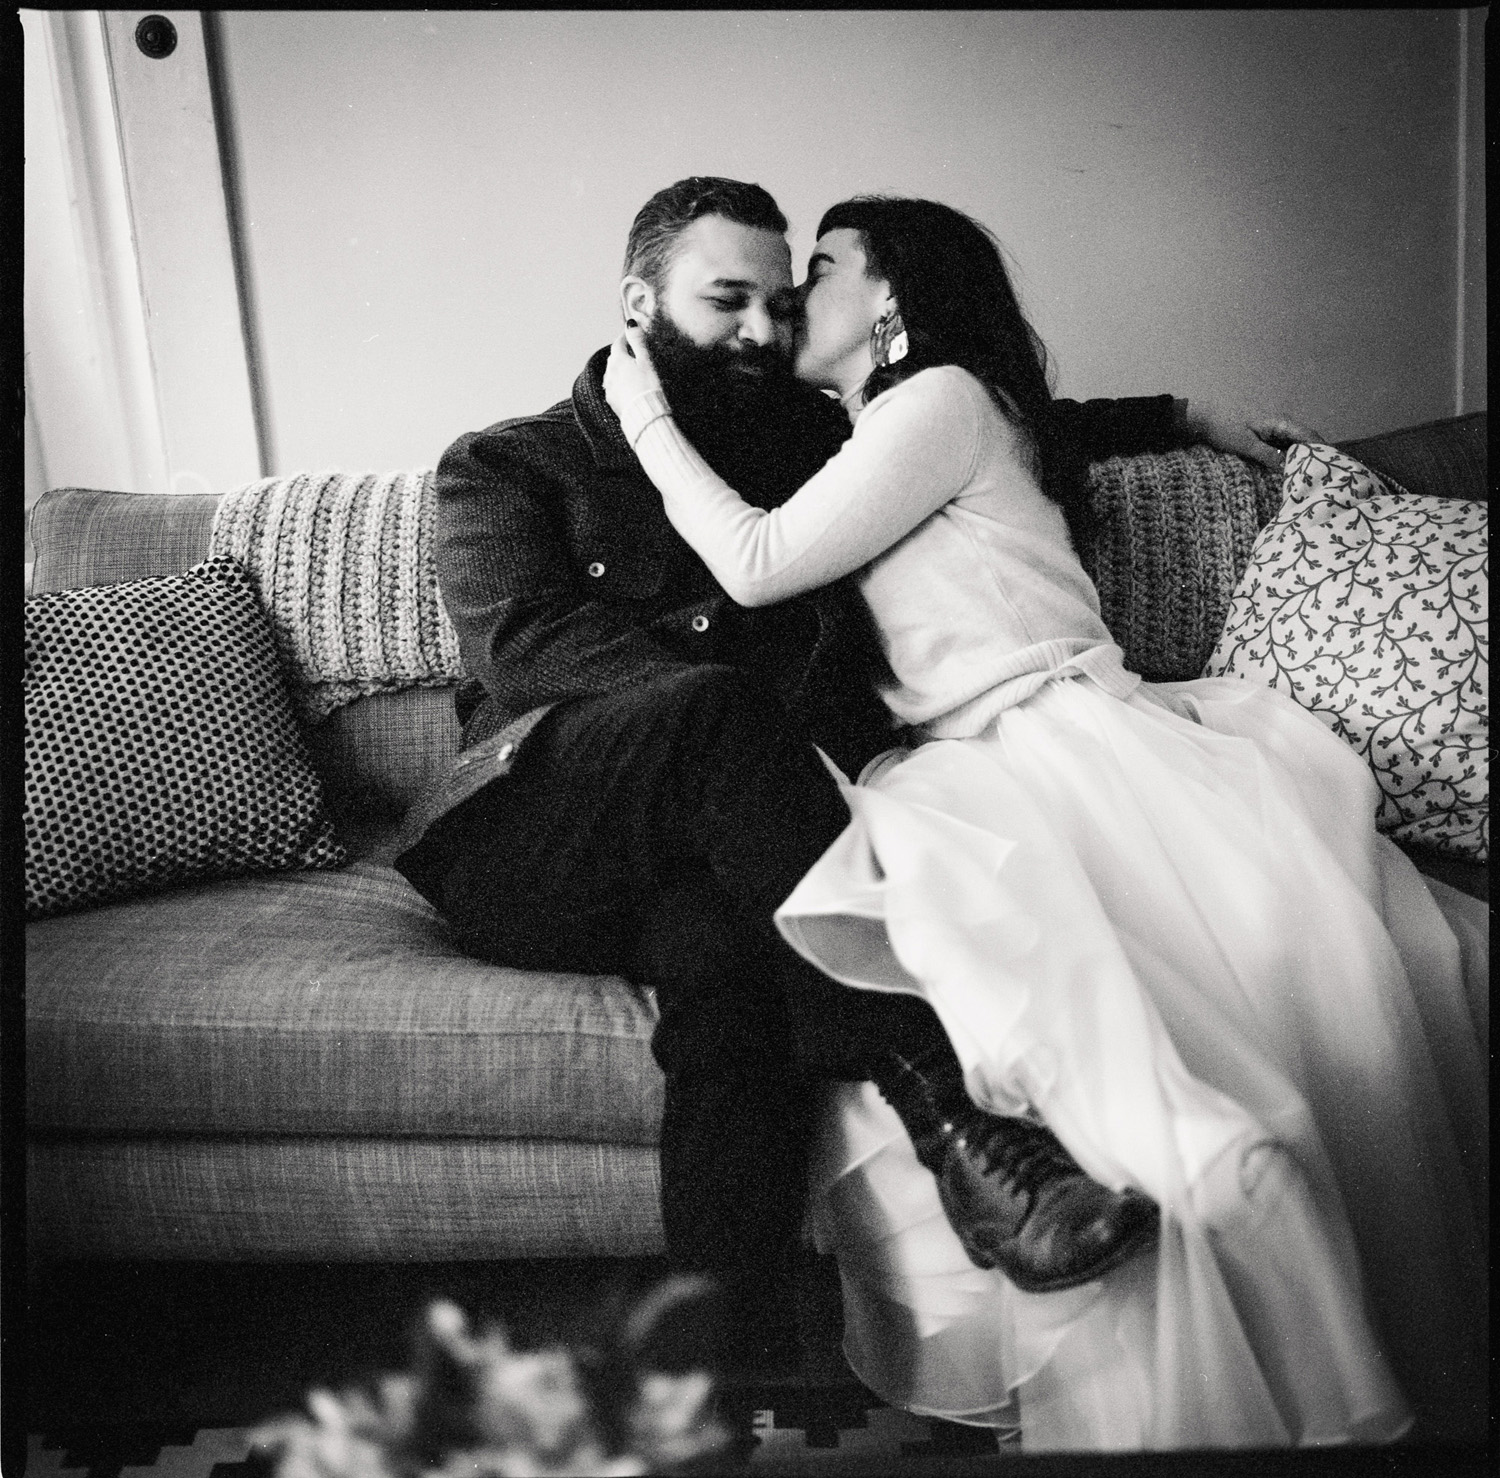 Spring_Cambridge_City_Hall_Wedding_Film_Photography_ 020.jpg